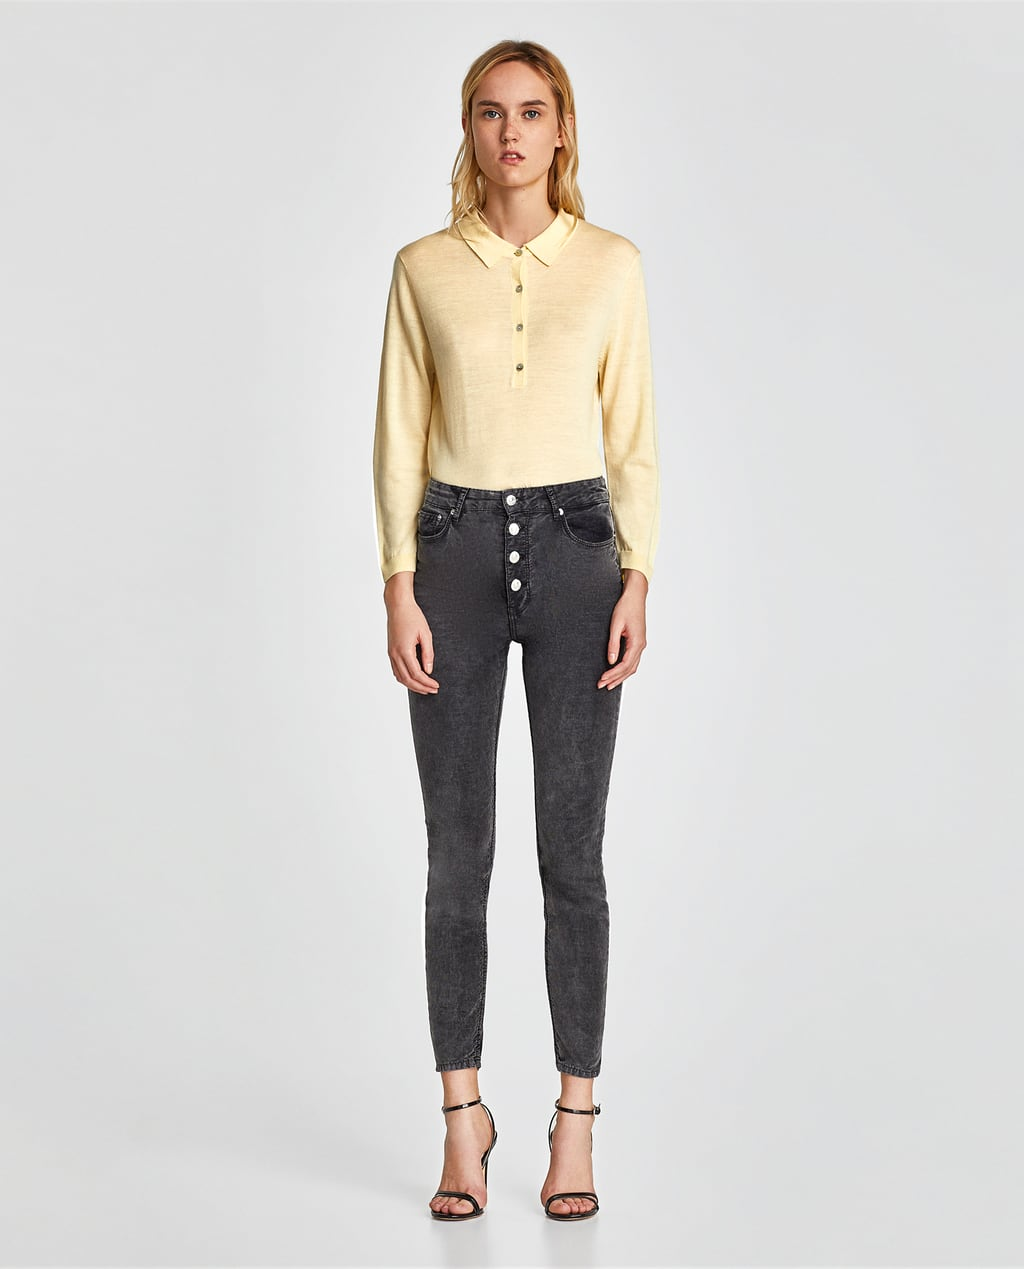 Corduroy grey jeans with button fly jeans sale woman zara indonesia image 1 of corduroy grey jeans with button fly from zara stopboris Images